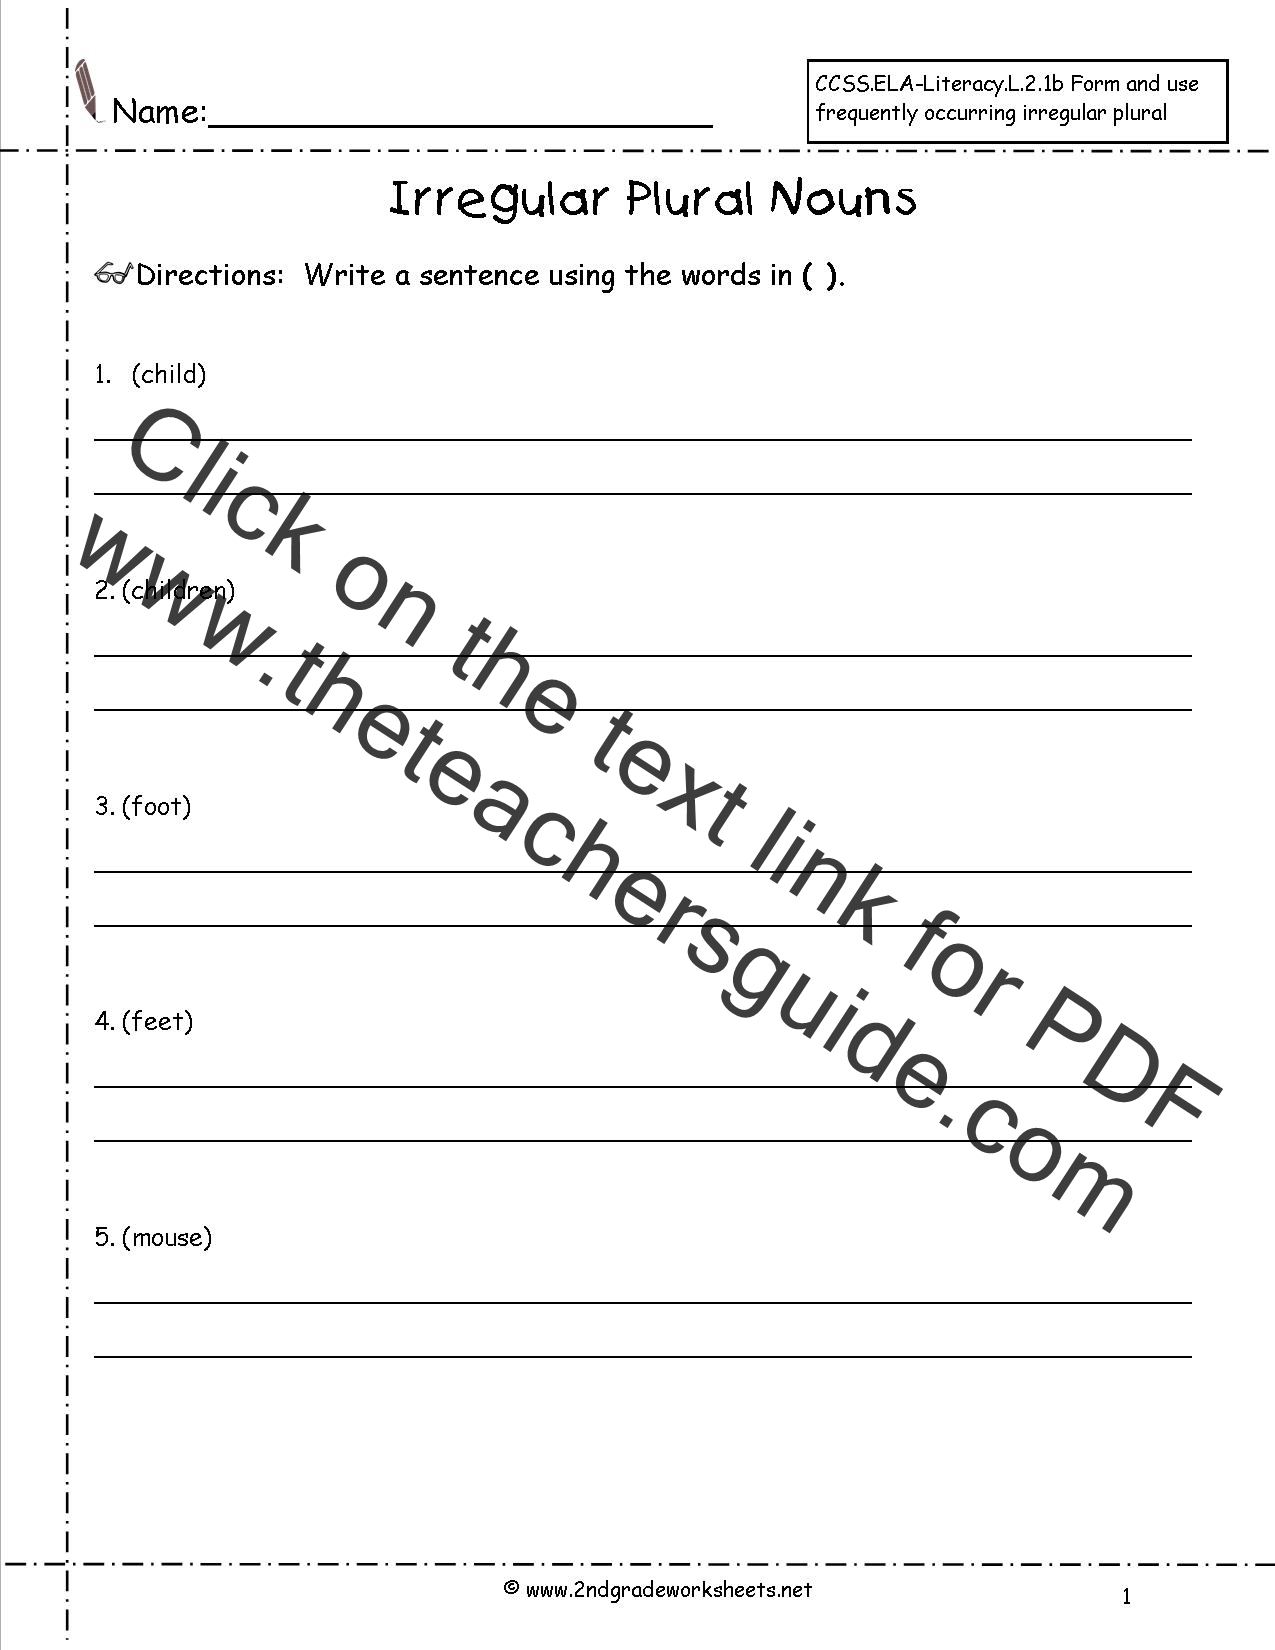 Printables Irregular Plural Nouns Worksheets singular and plural nouns worksheets irregular worksheet